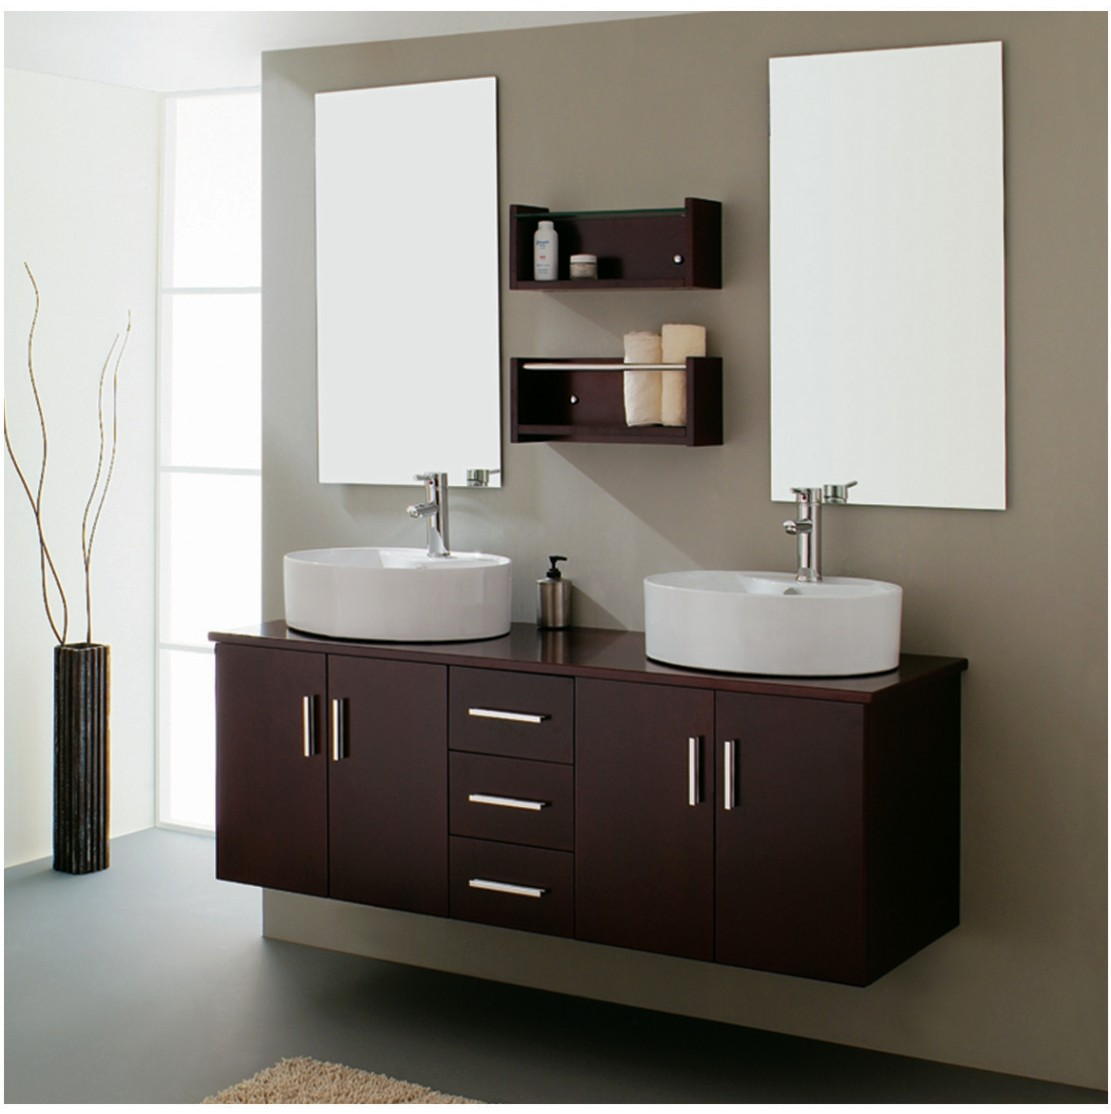 Modern bathroom decor accessories - Photo Gallery Of The Modern Bathroom Accessories Ideas